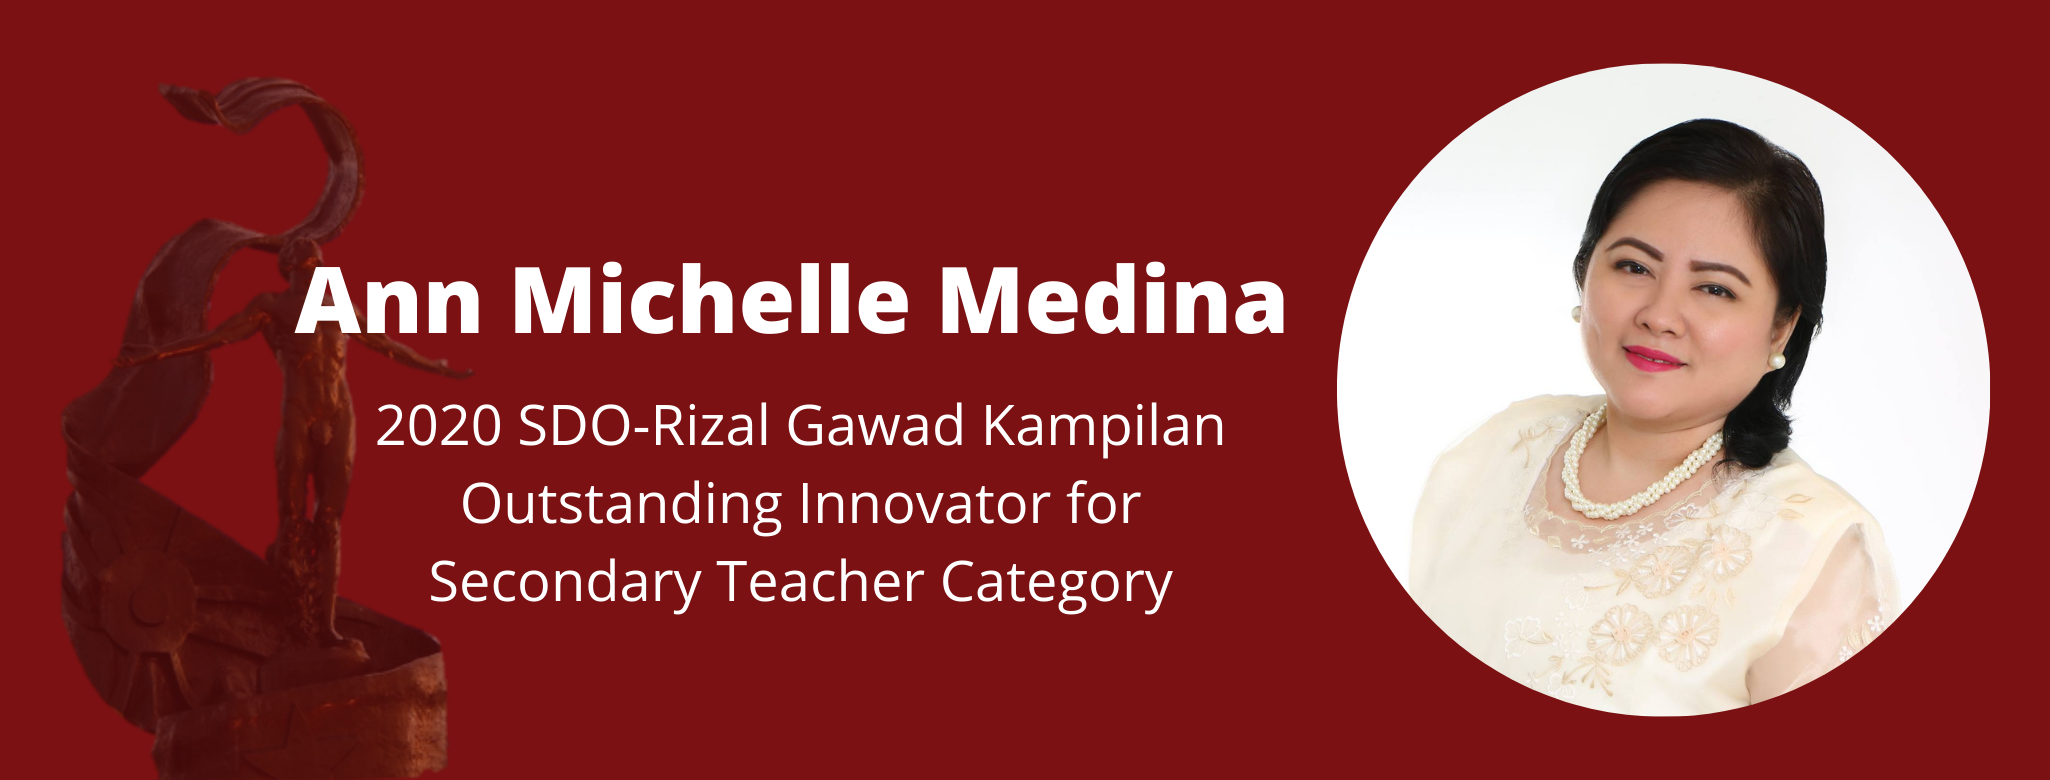 MDE student recognized as Outstanding Innovator at 2020 SDO-Rizal's Gawad Kampilan